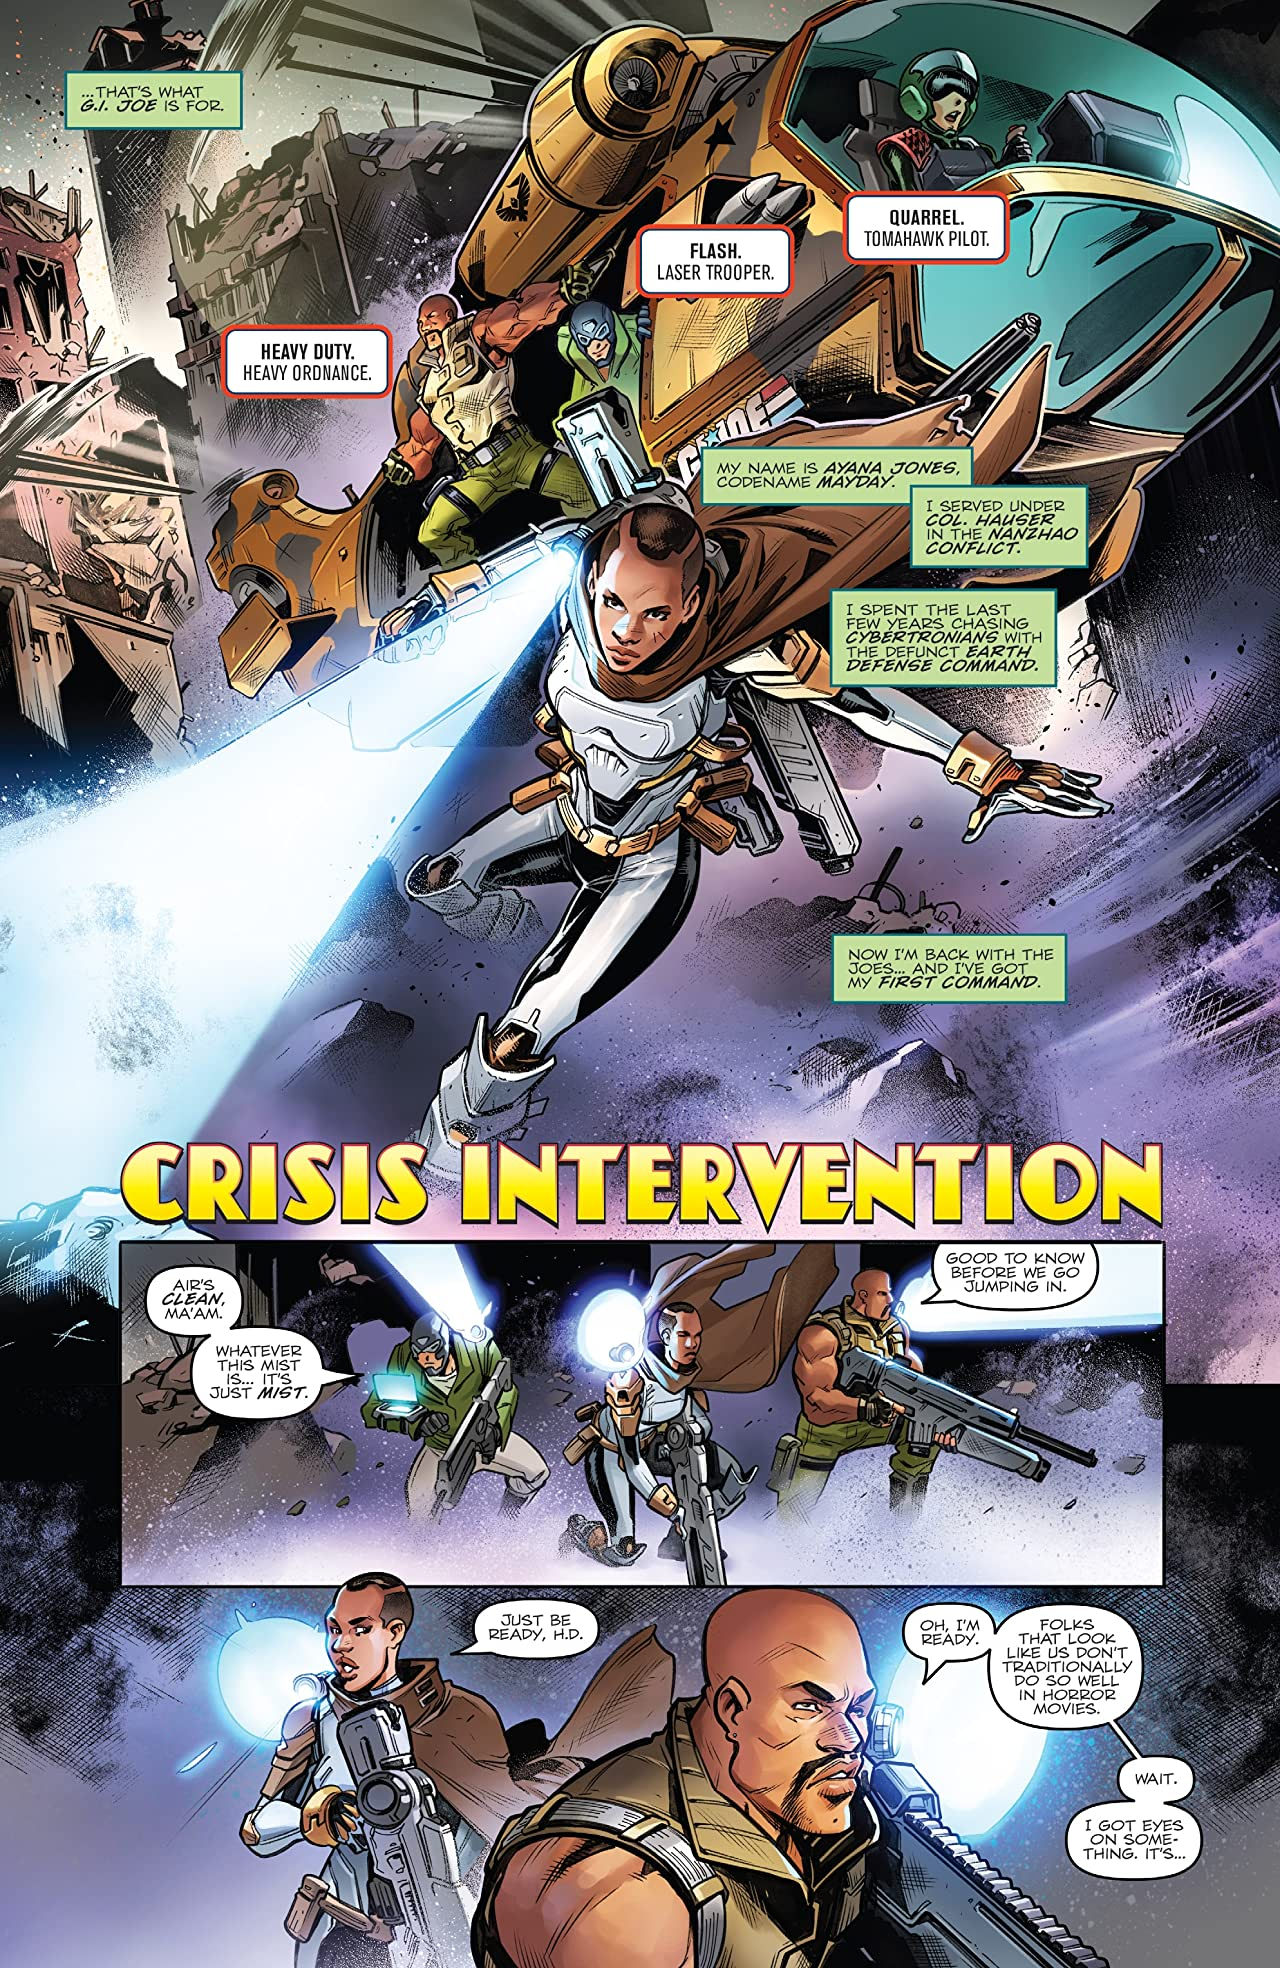 Revolutionaries Vol. 1: Crisis Intervention